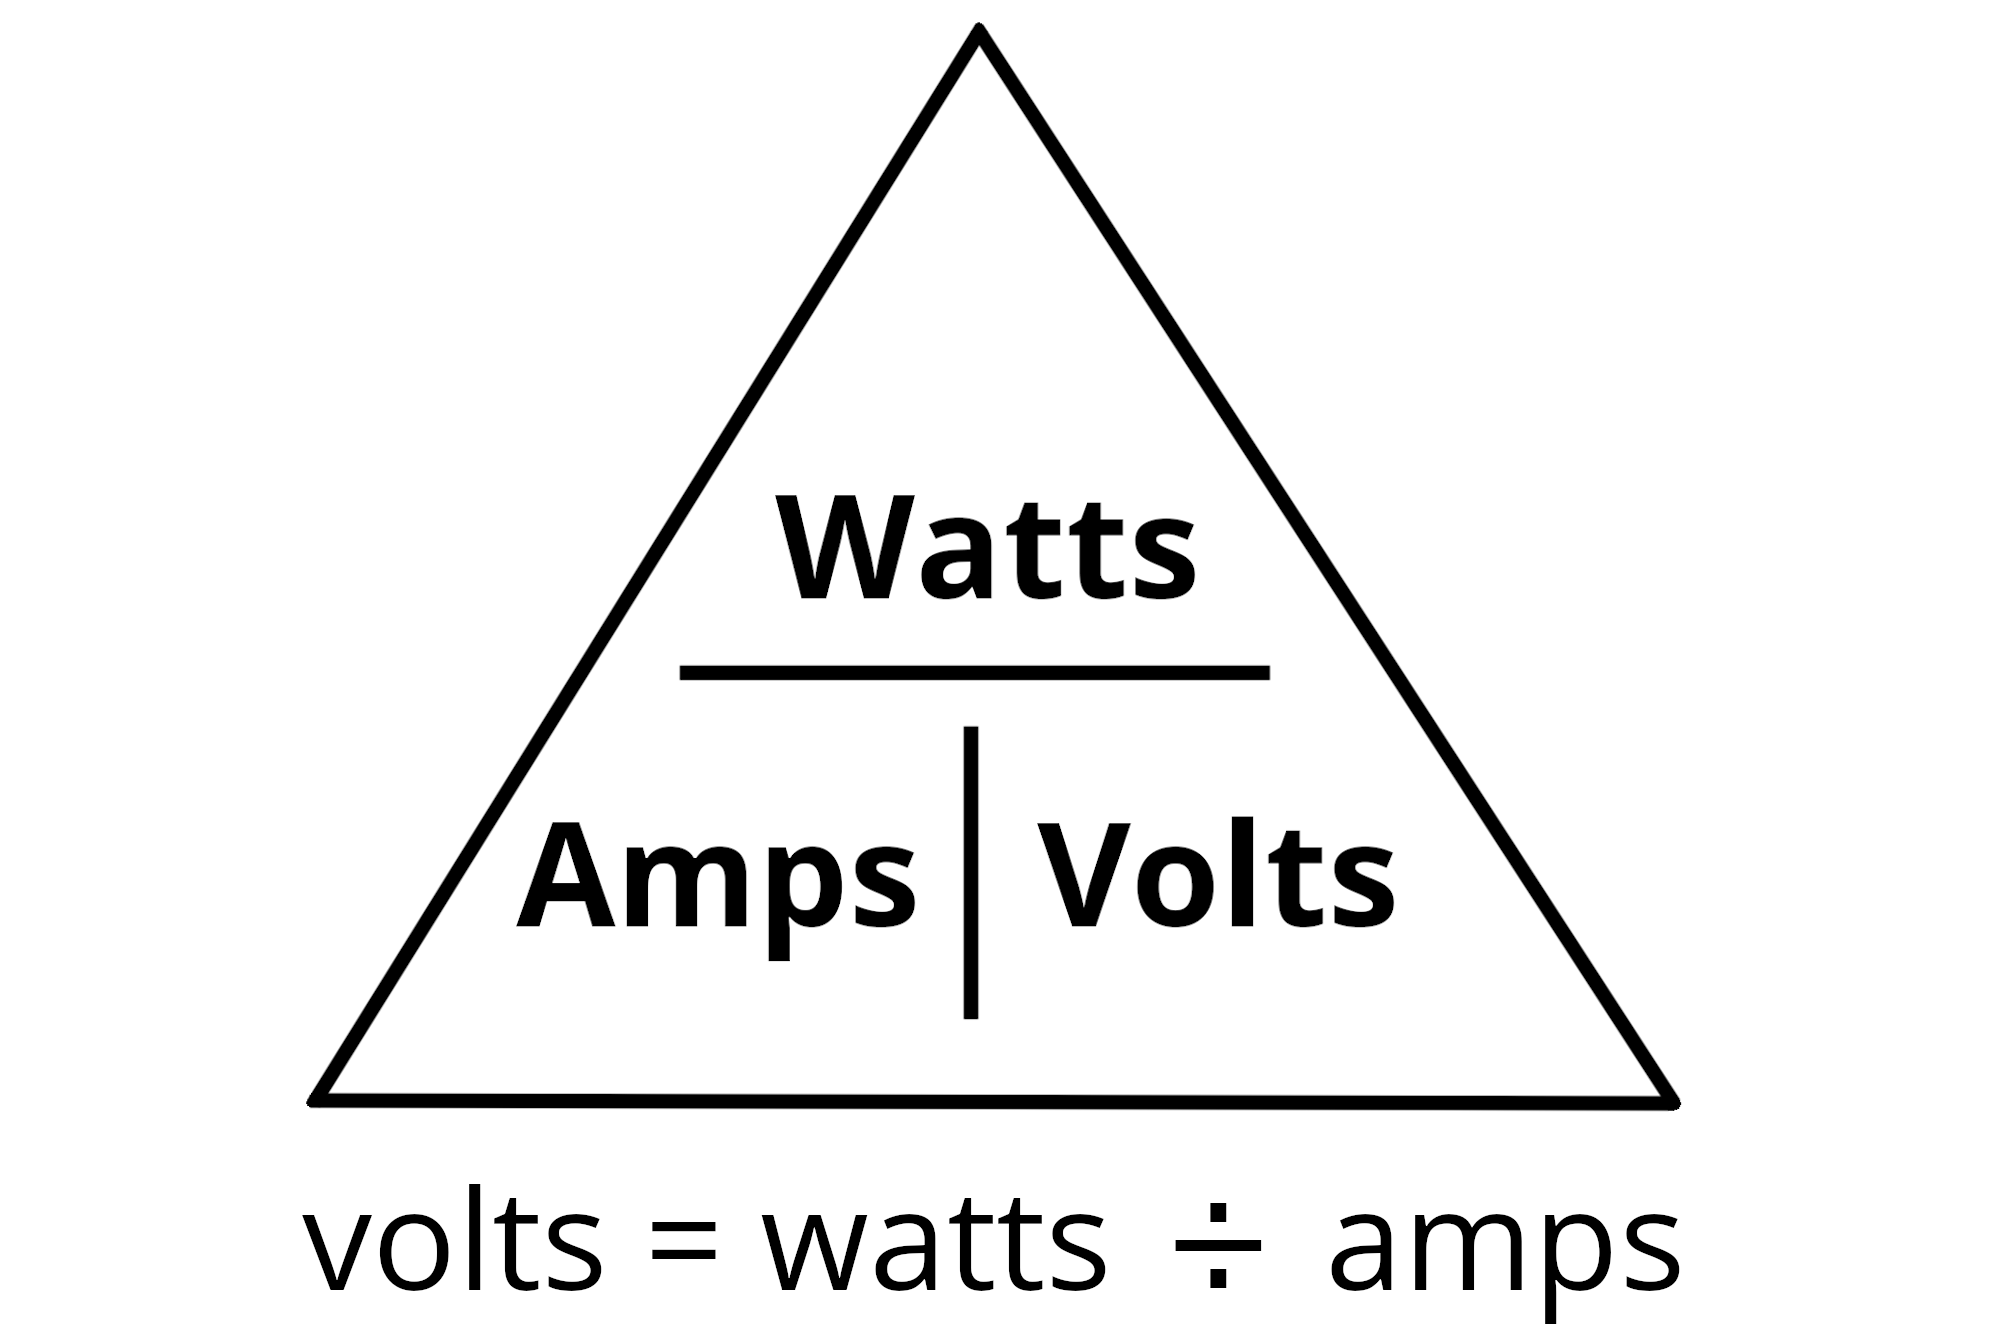 Power triangle illustrating the formula to convert amps to volts with volts being equal to watts divided by amps